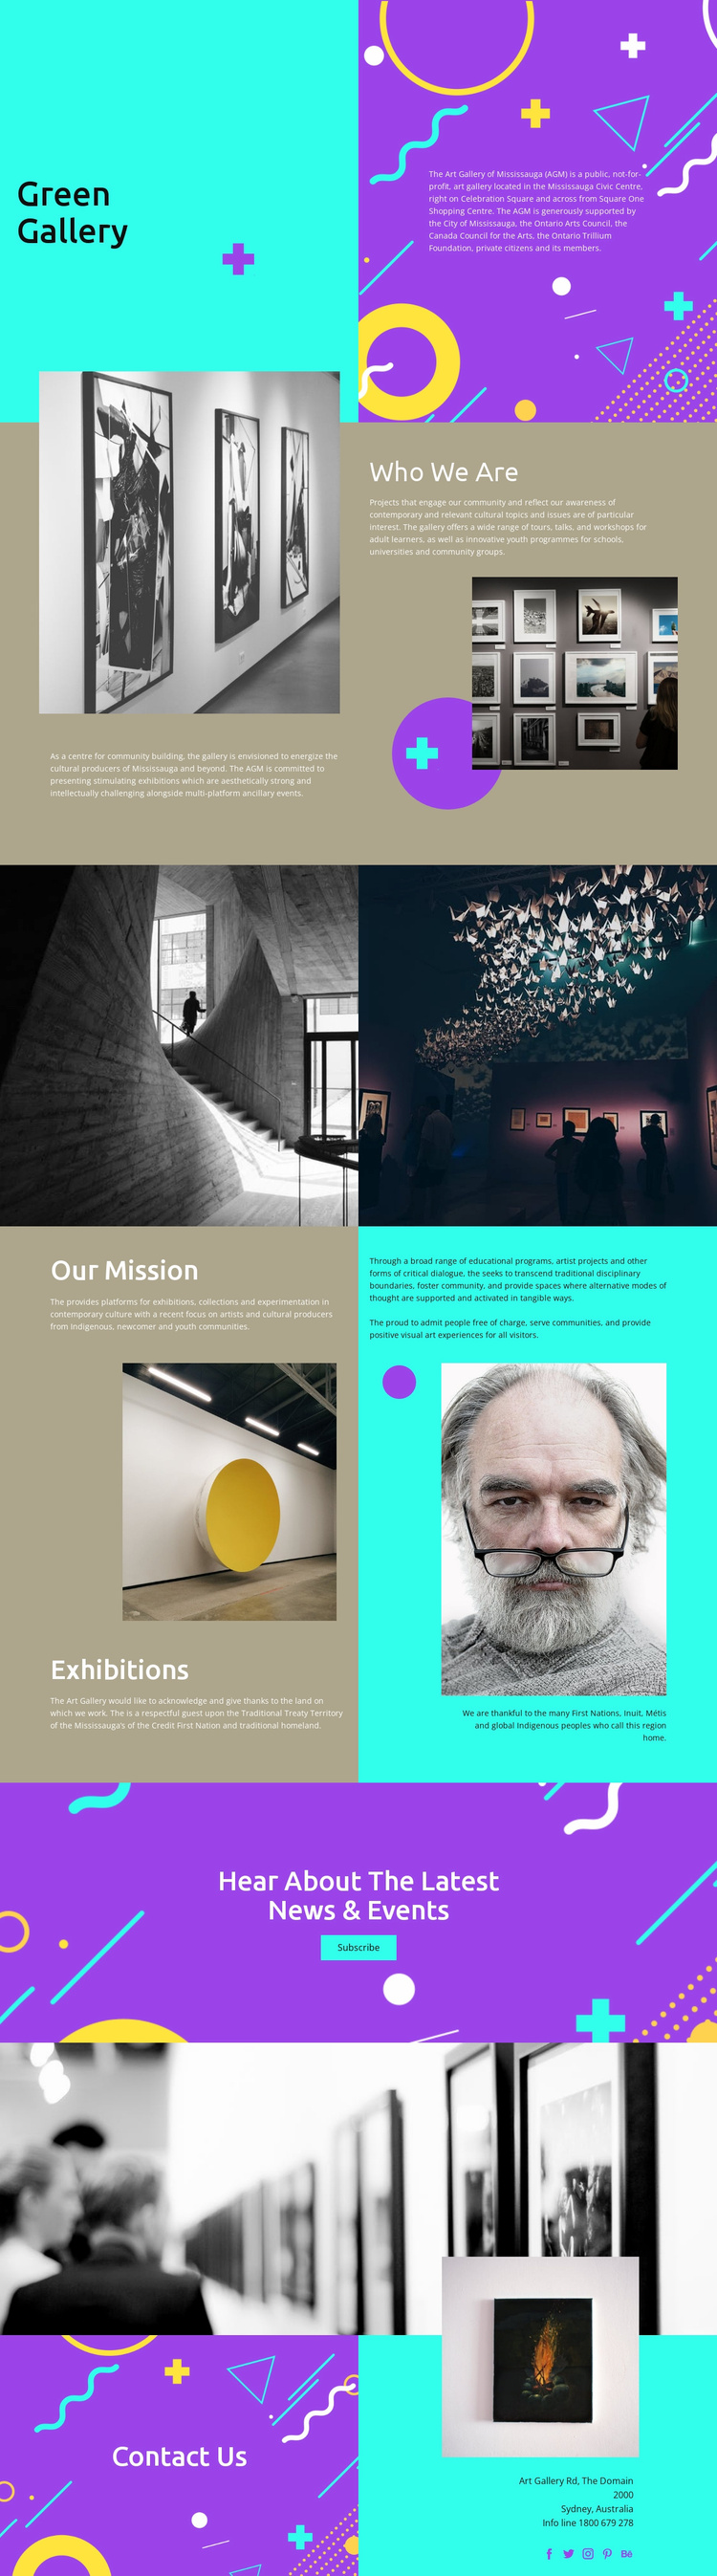 Green Gallery Landing Page